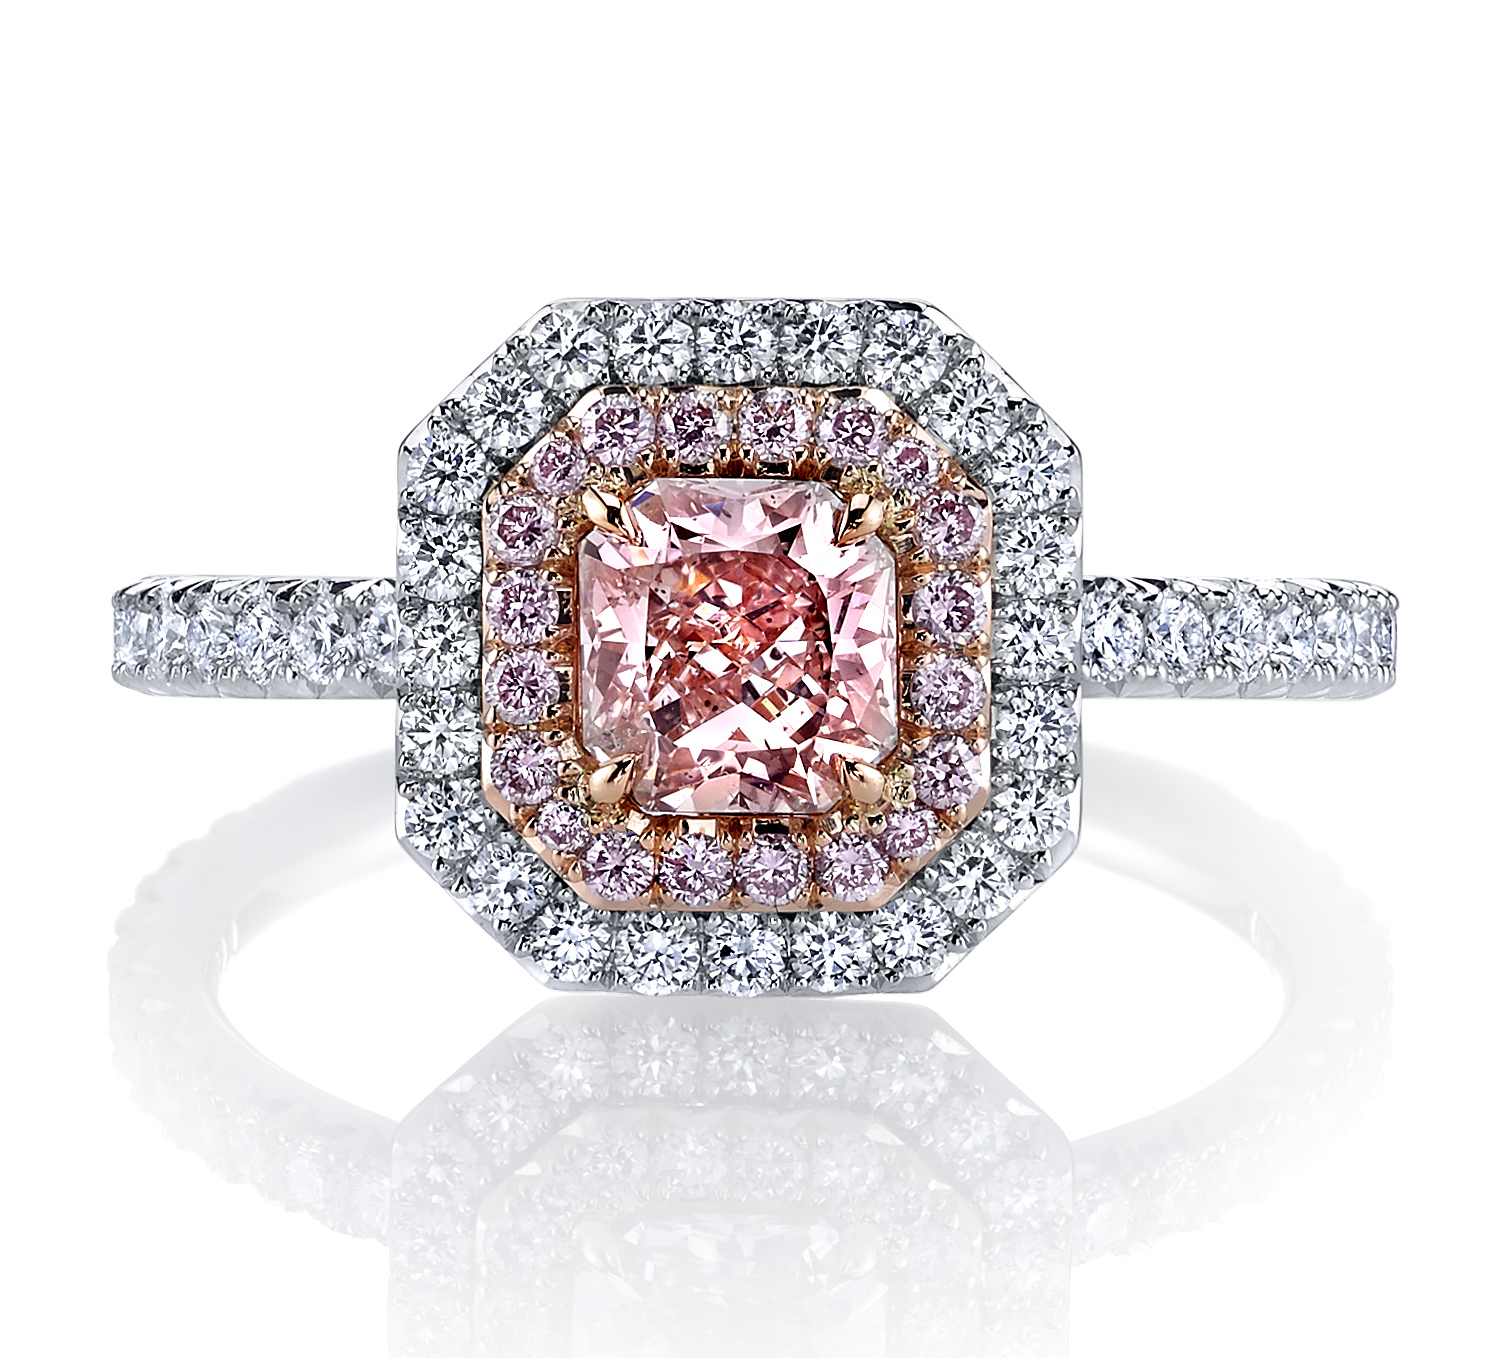 PINK ROSE   natural fancy pink radiant cut diamond set in a platinum and rose gold setting. This design features a double halo of pink and white french pave set diamonds. The saturation of this exceptional pink diamond gives this ring a flash of color unlike any other.